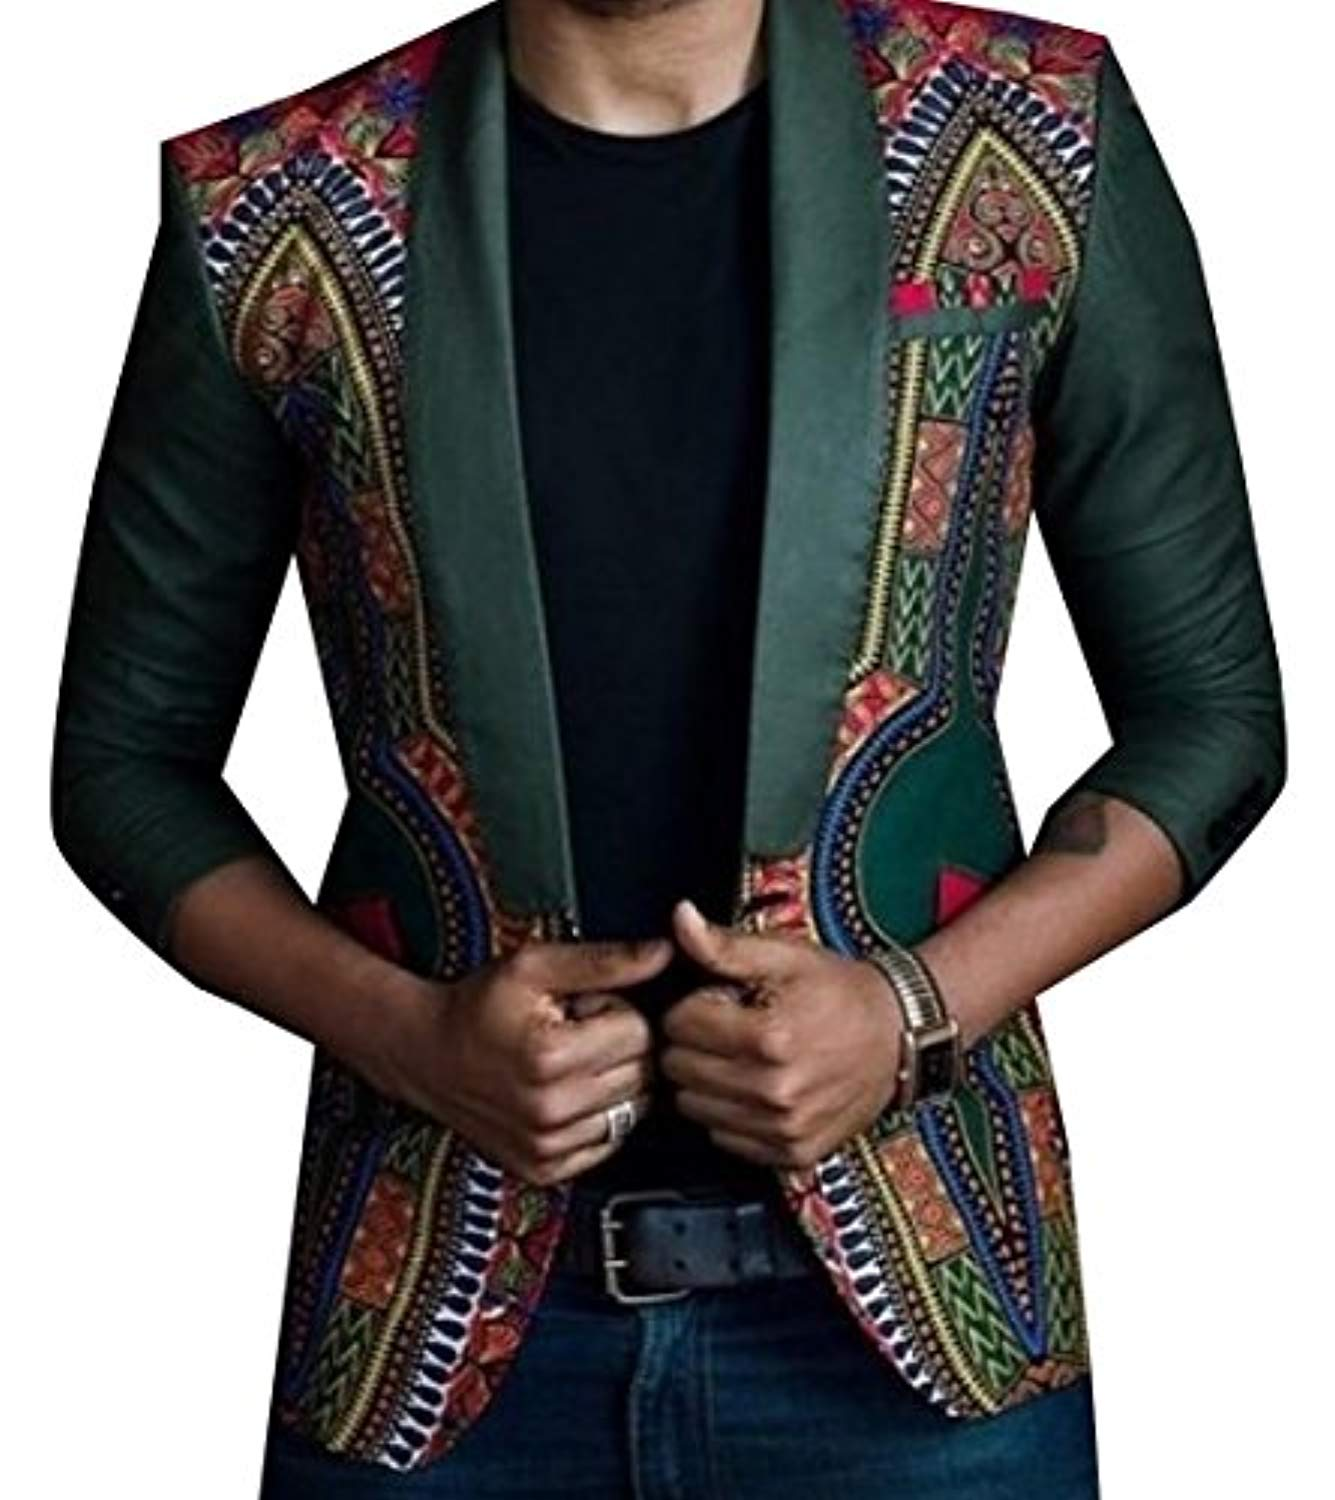 RDHOPE Men's Flower Print Long Sleeve African One Button Blazer Jackets - Ufumbuzi - Home